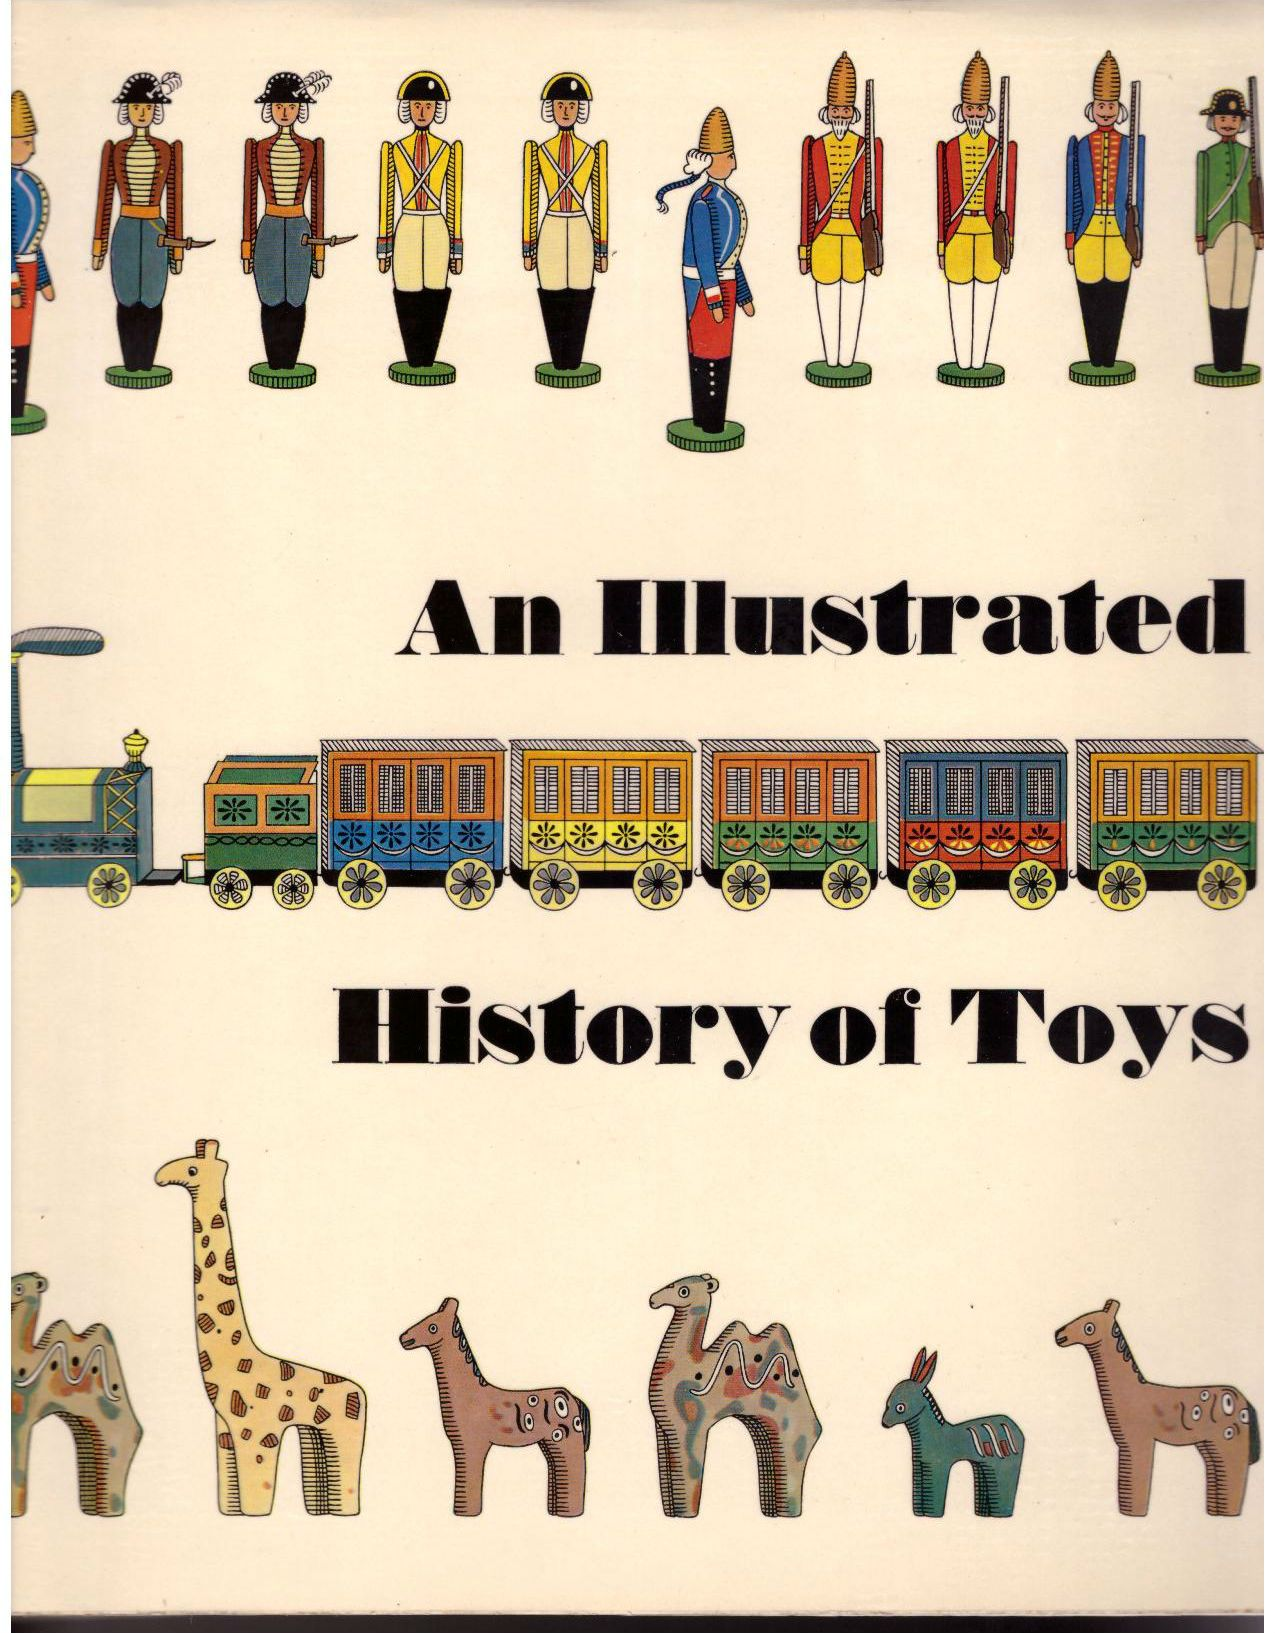 An illustrated history of toys (Abbey library), Fritzsch, Karl Ewald